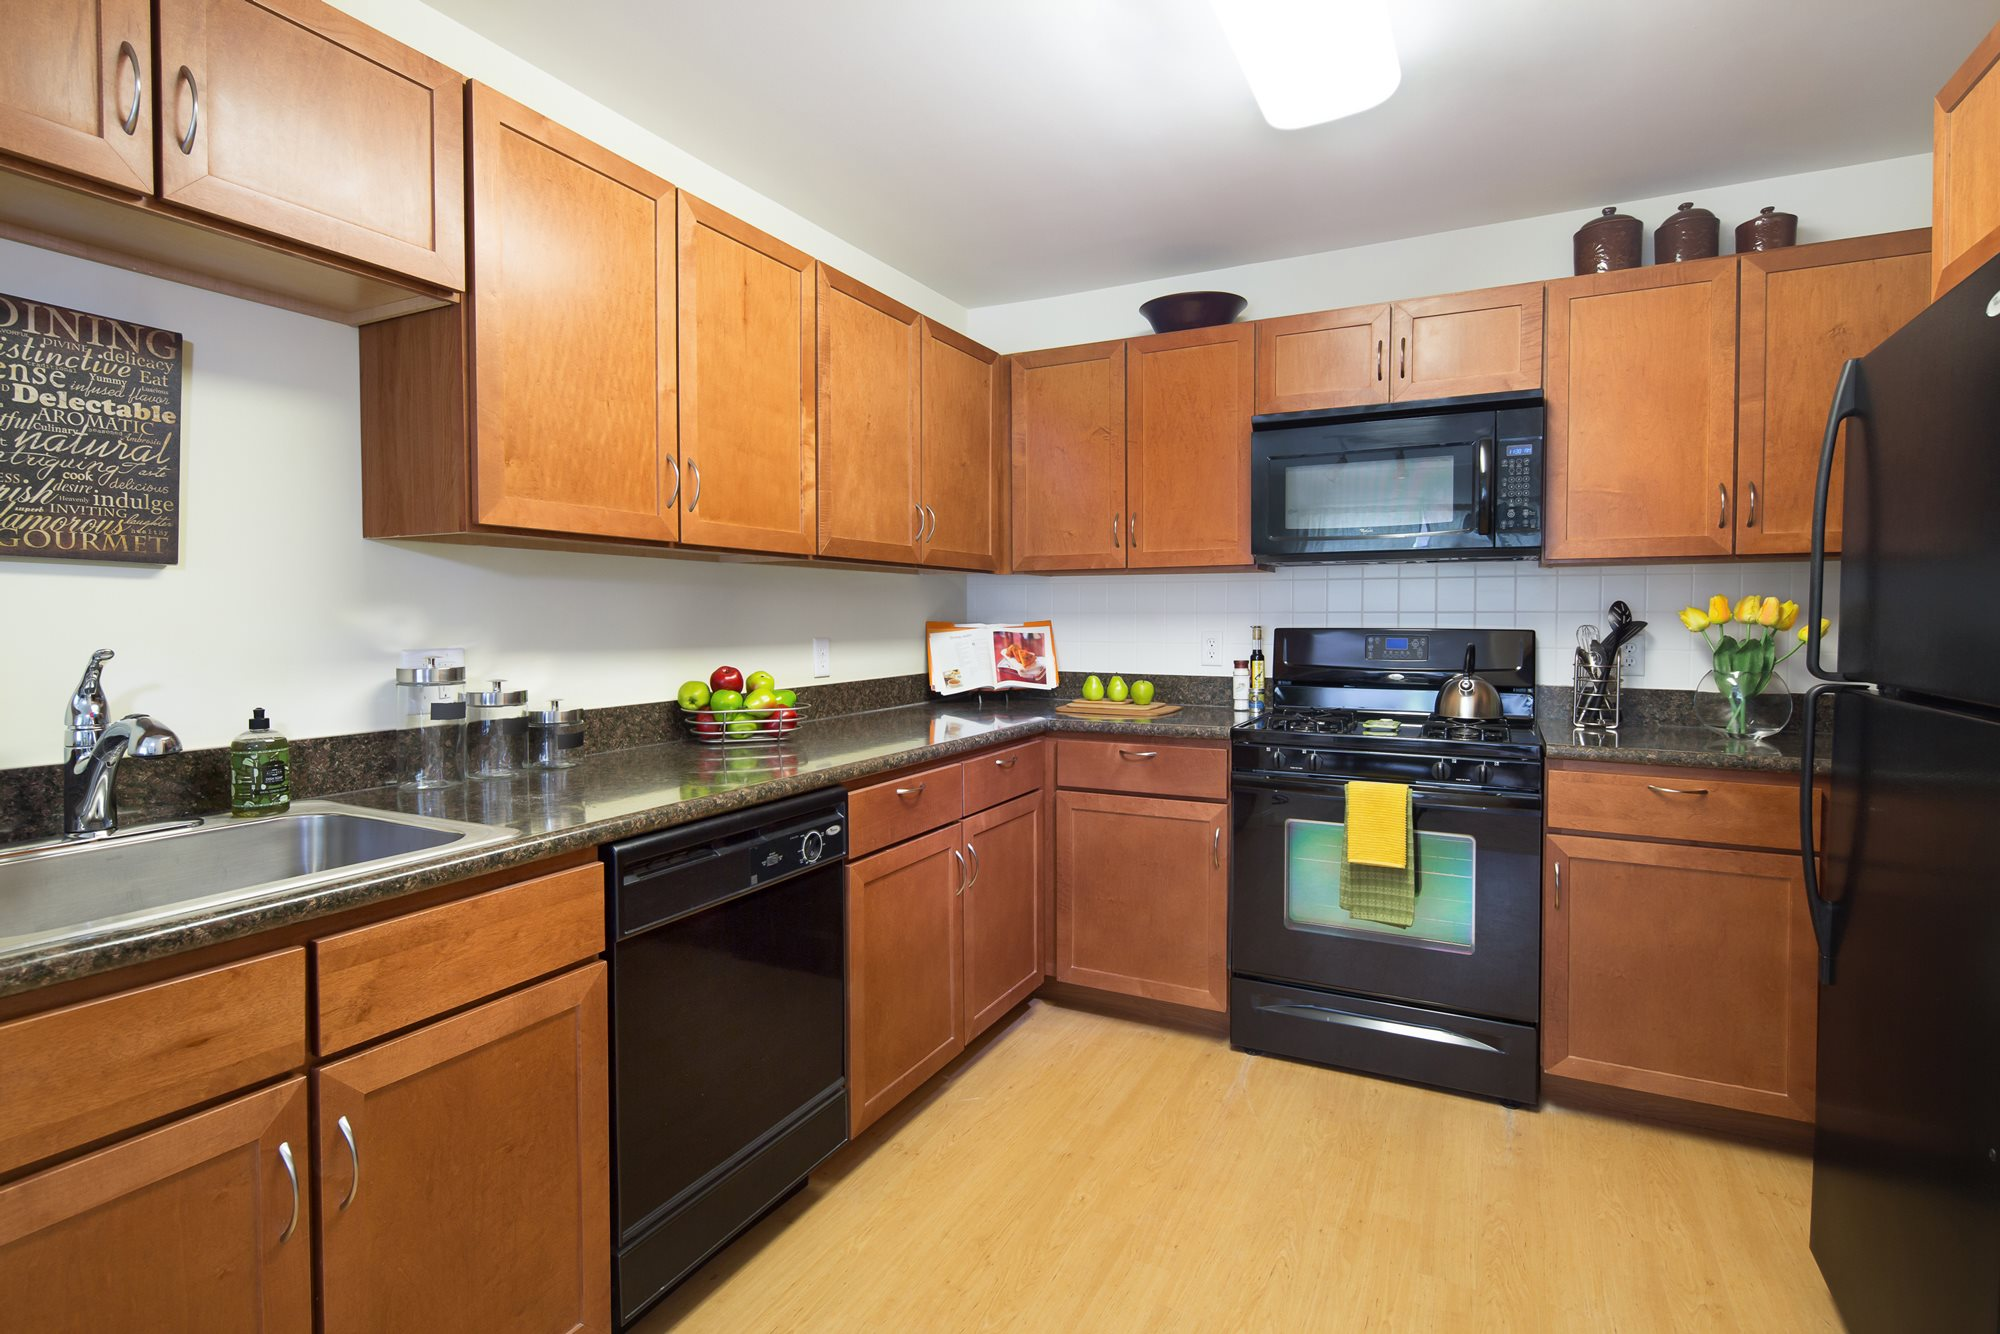 Kitchen at Huntington Townhomes in Shelton, CT